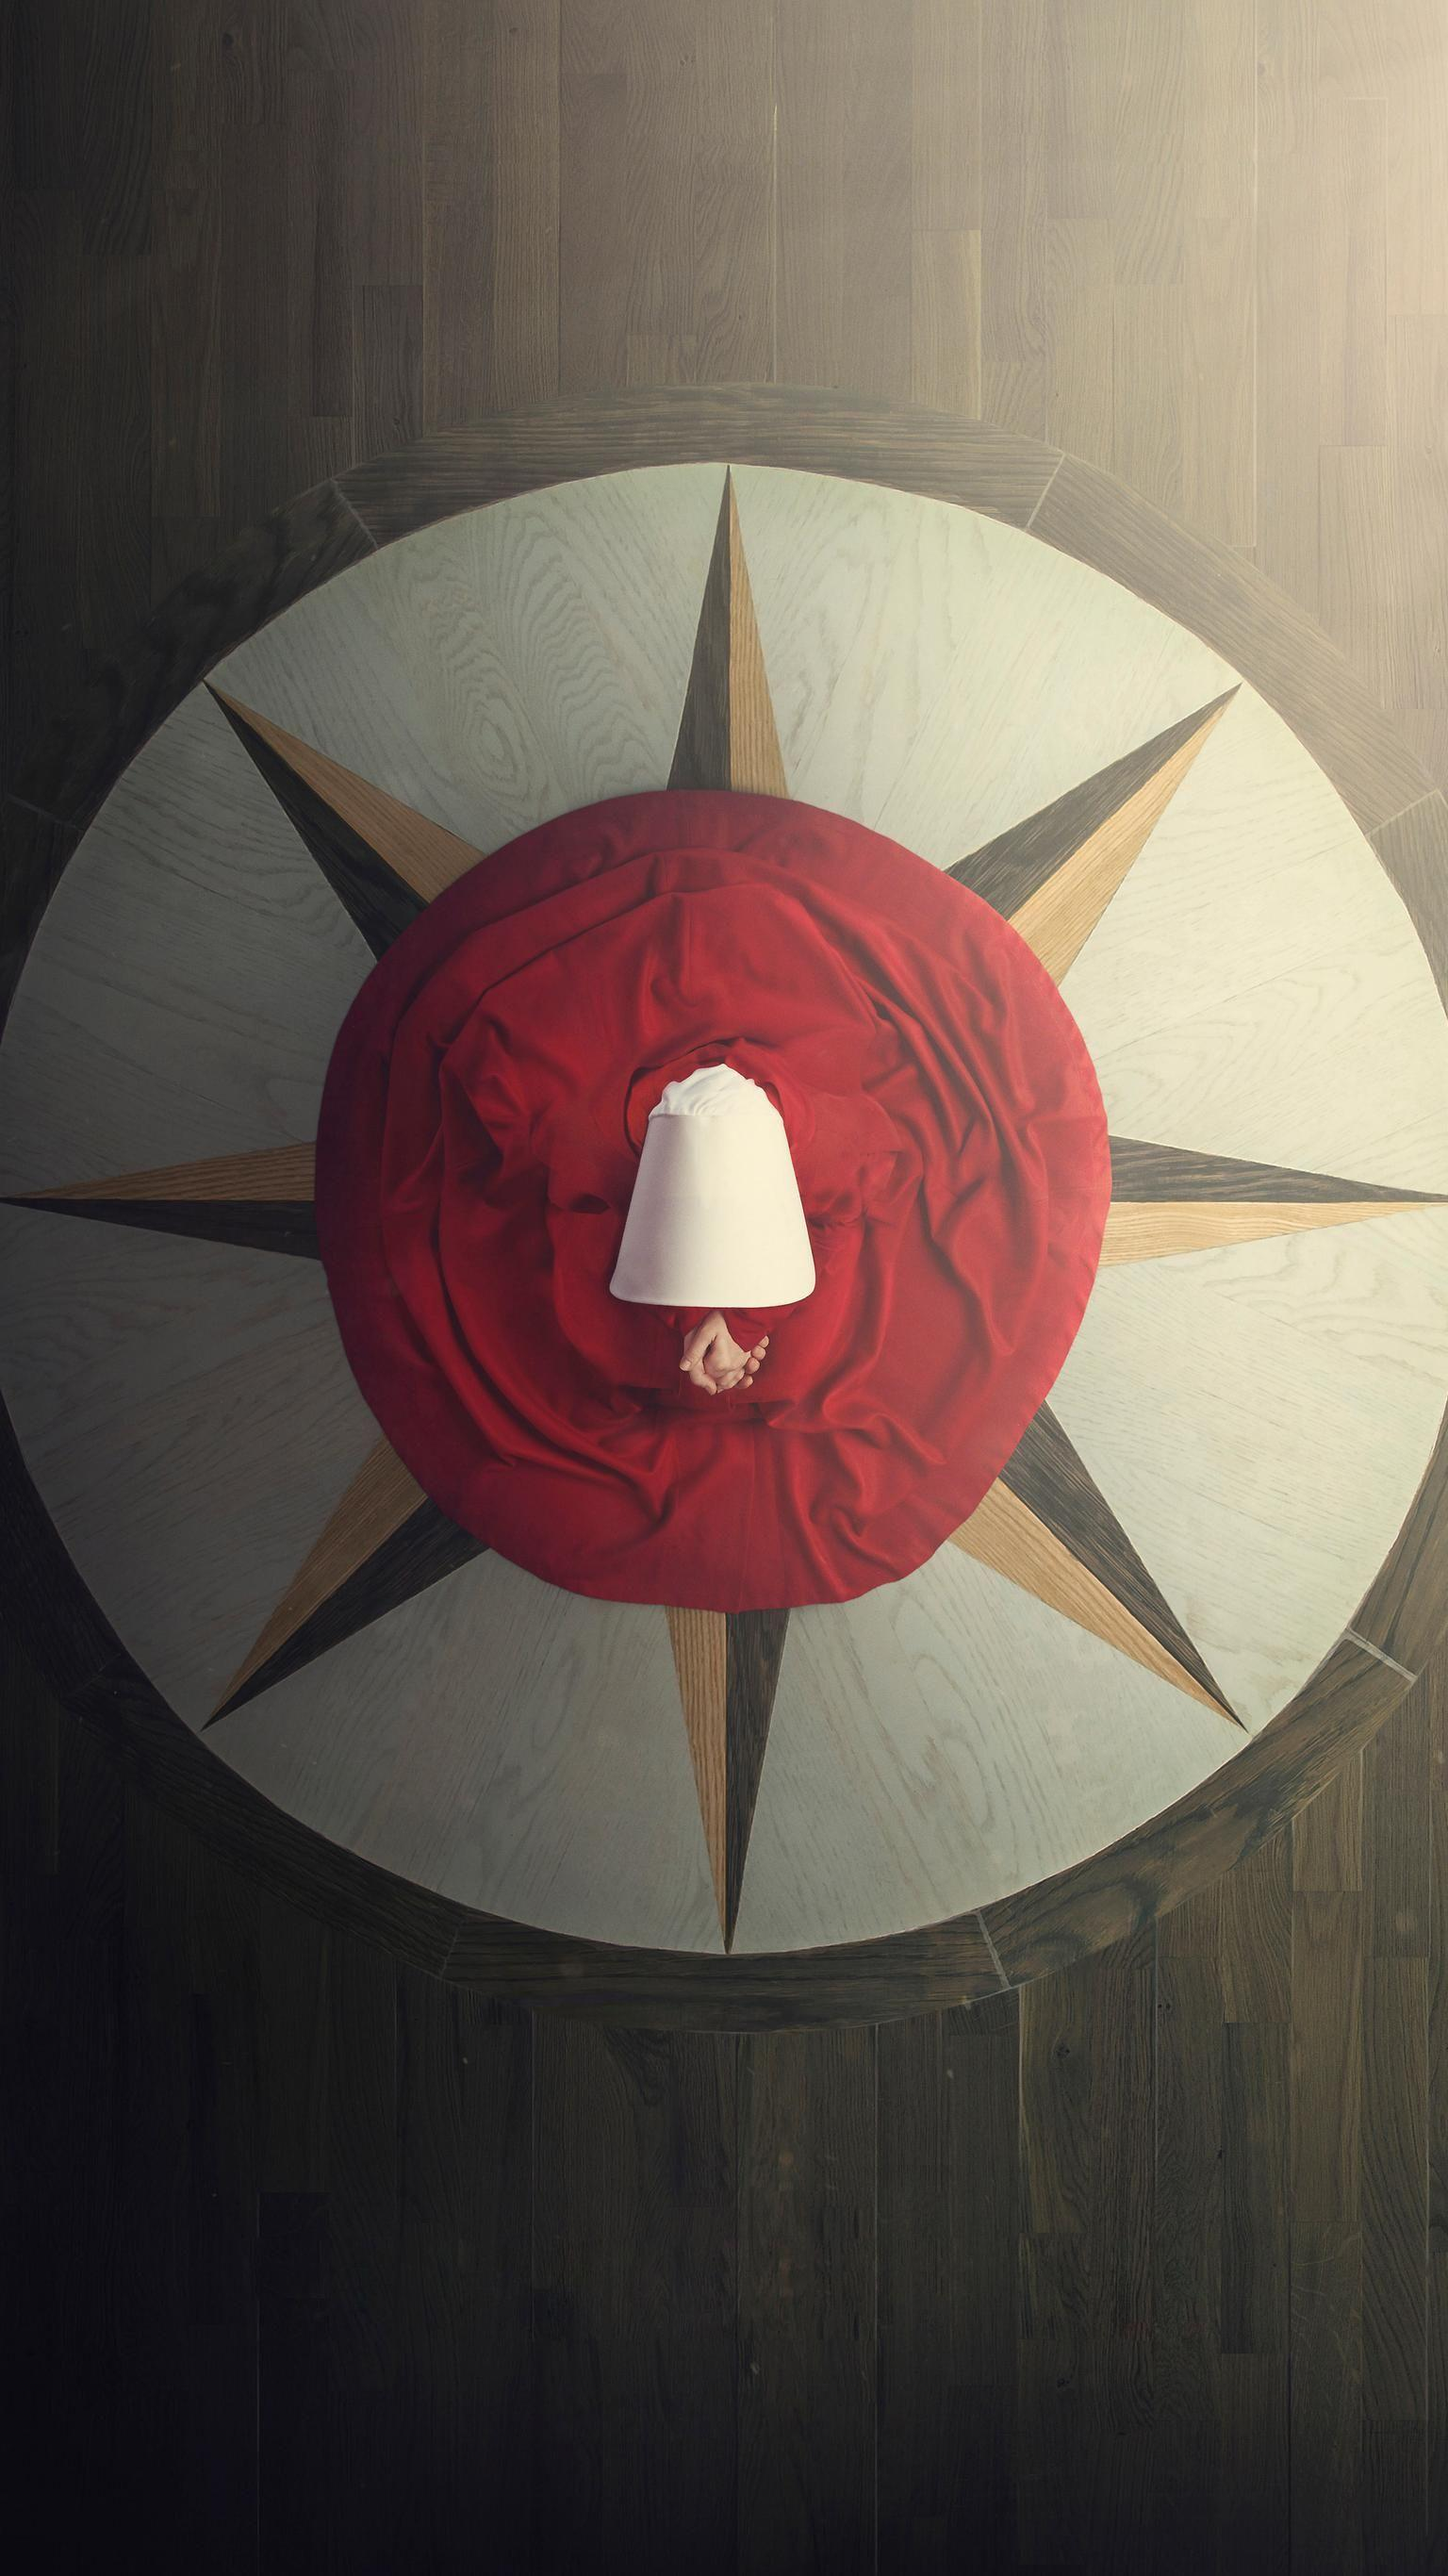 The Handmaid's Tale Phone Wallpapers